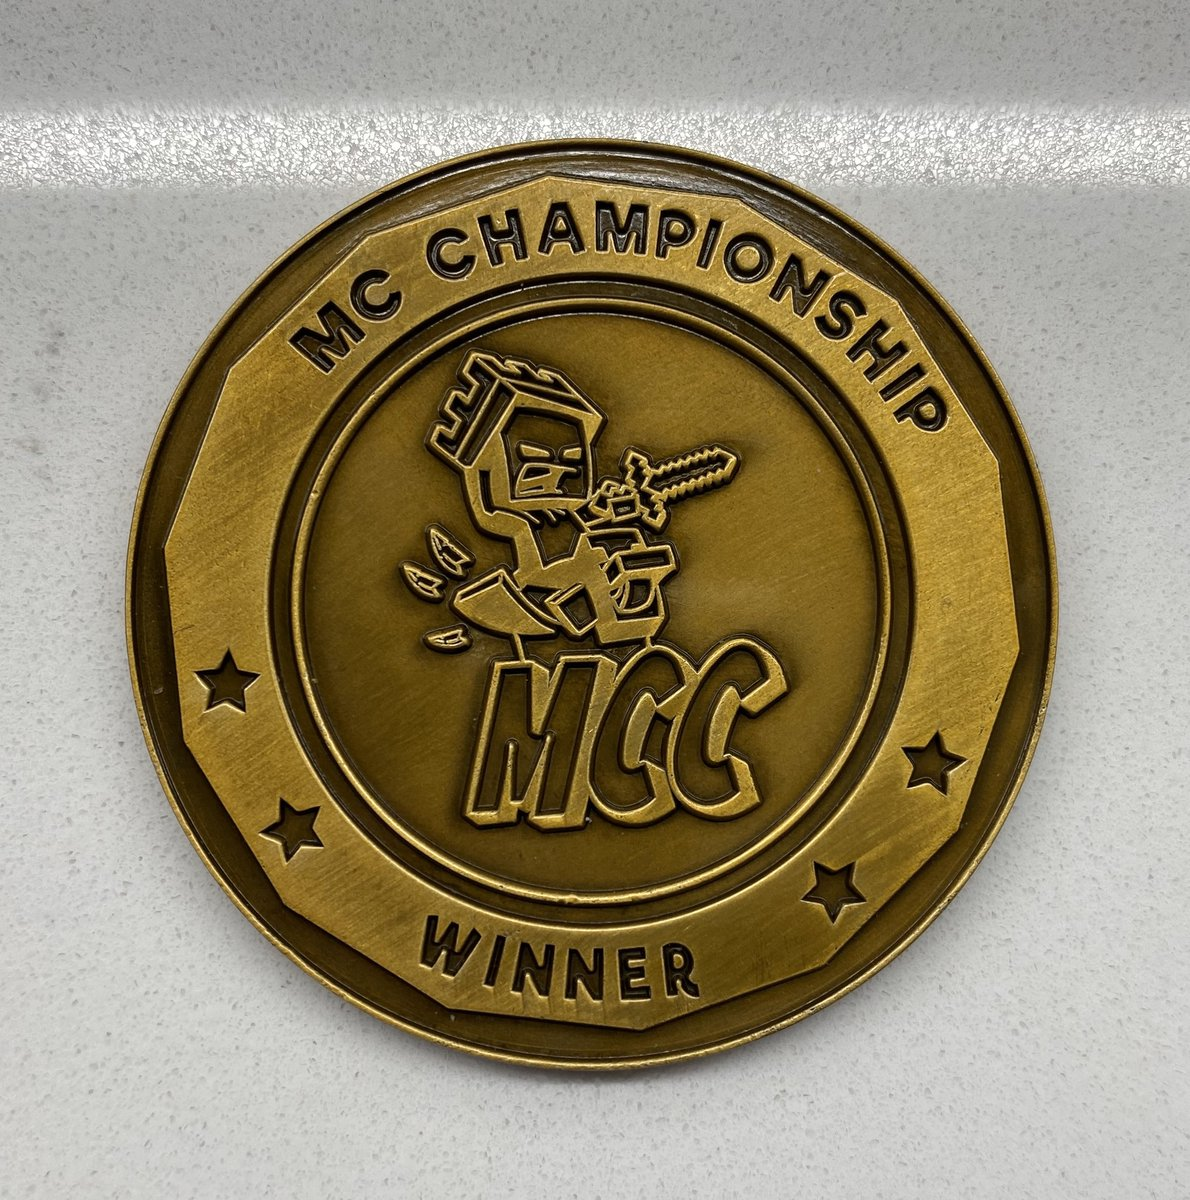 MCC is no longer just for the glory.  Look at these beauties that will be heading out to all of our winners 💪 https://t.co/TLvH8IFoT8